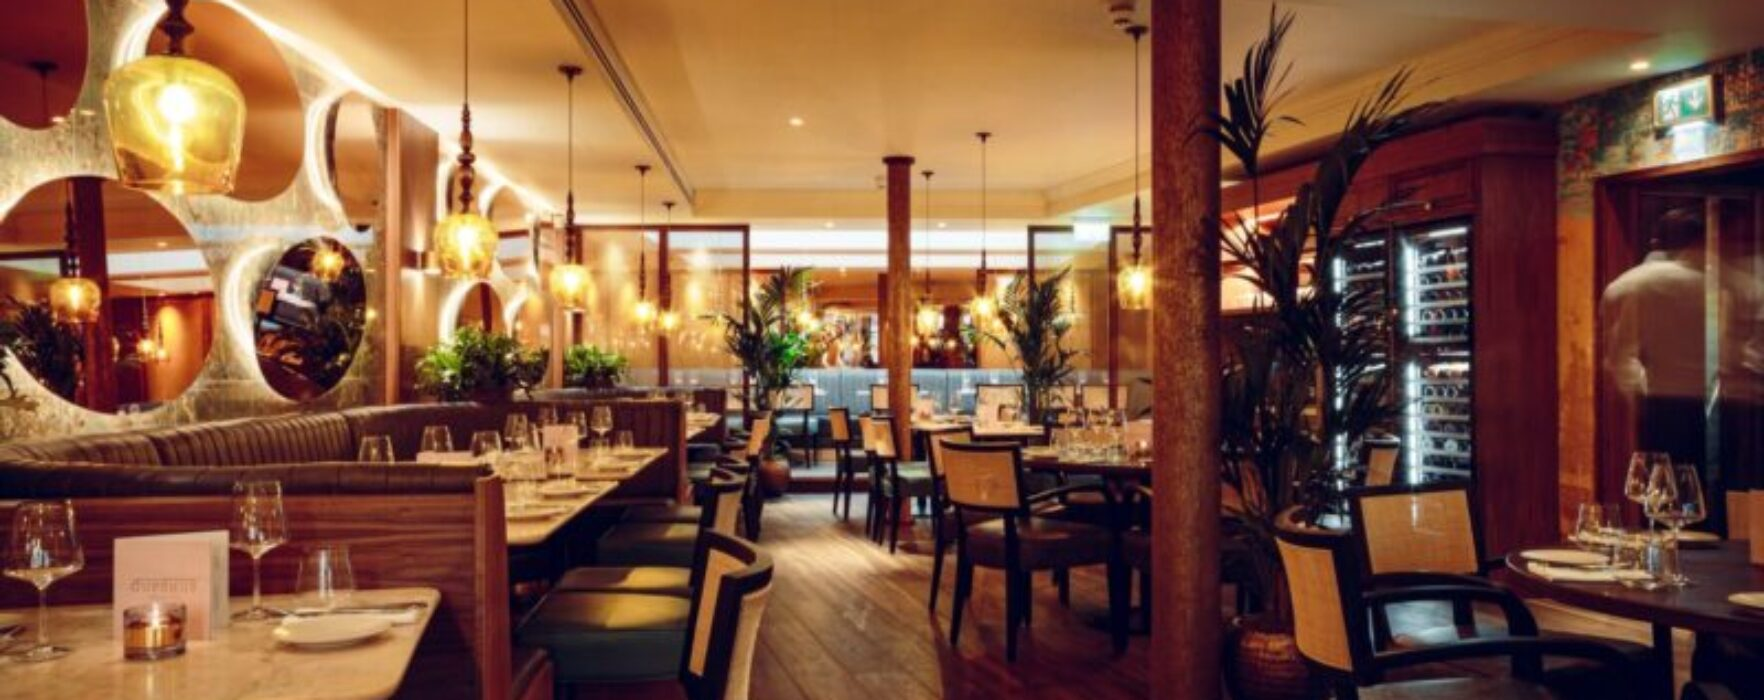 CHESHIRE: Hale's newest foodie hotspot takes Indian food to the next level